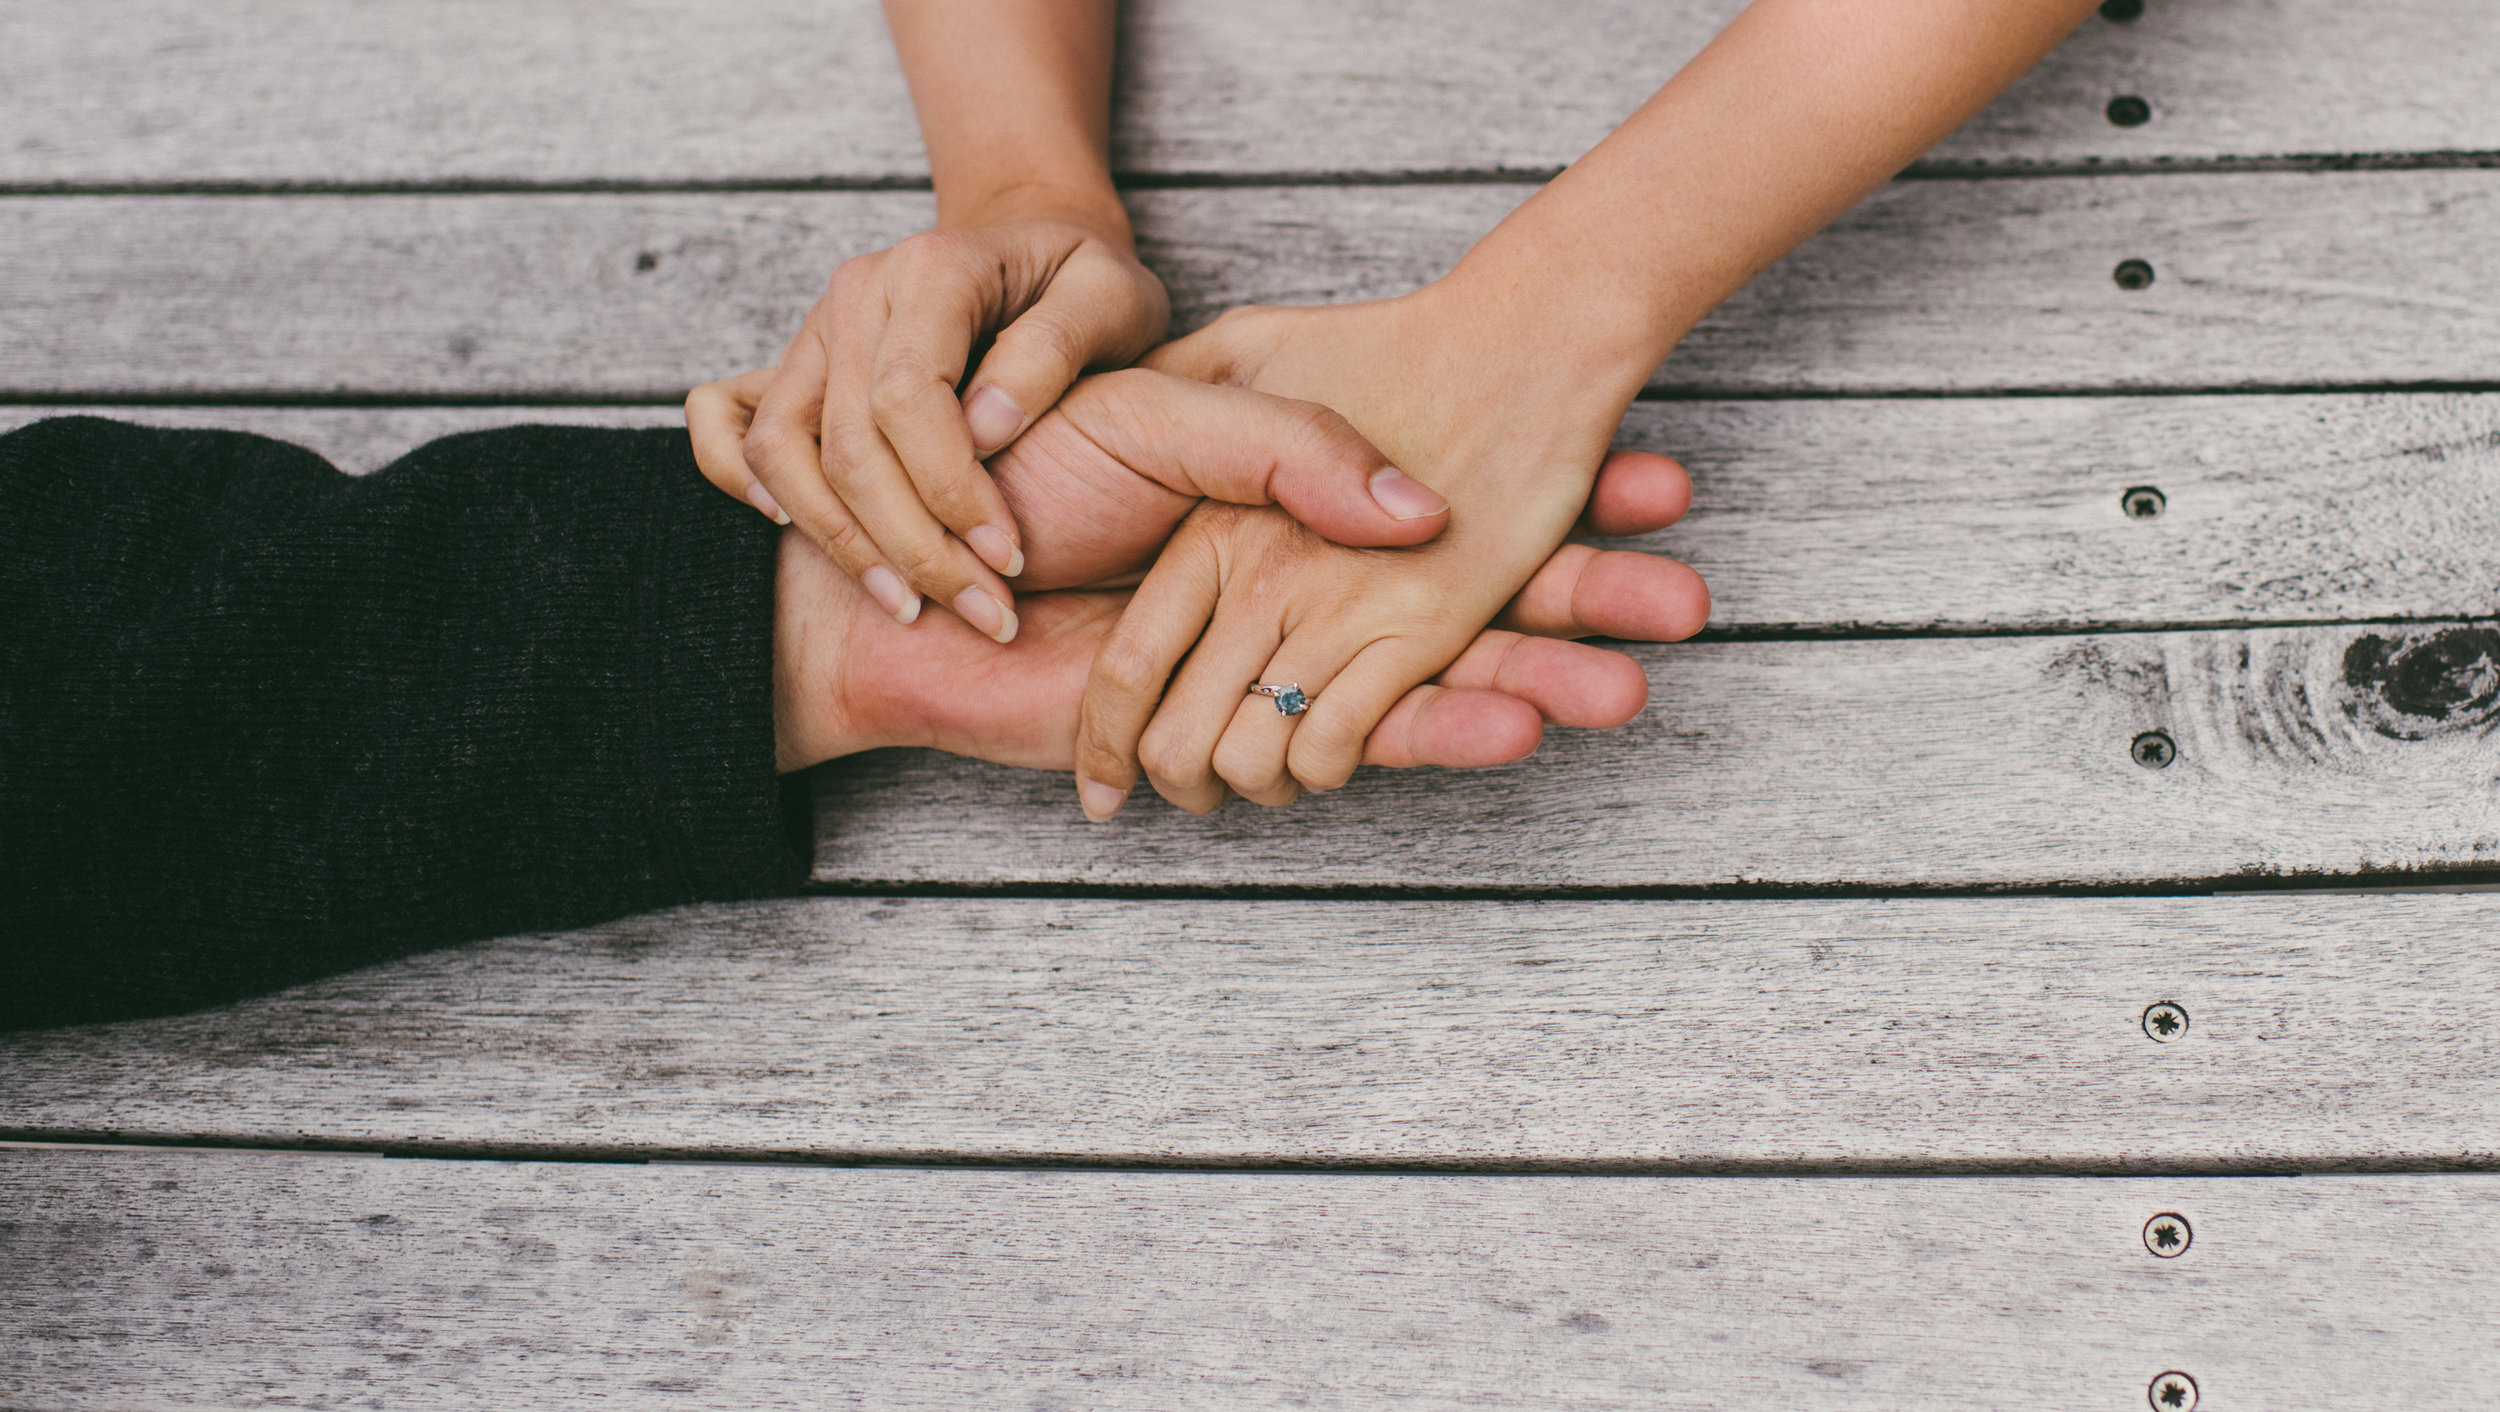 LILY & ANDREW - ENGAGED - TWOTWENTY by CHI-CHI AGBIM-77.jpg